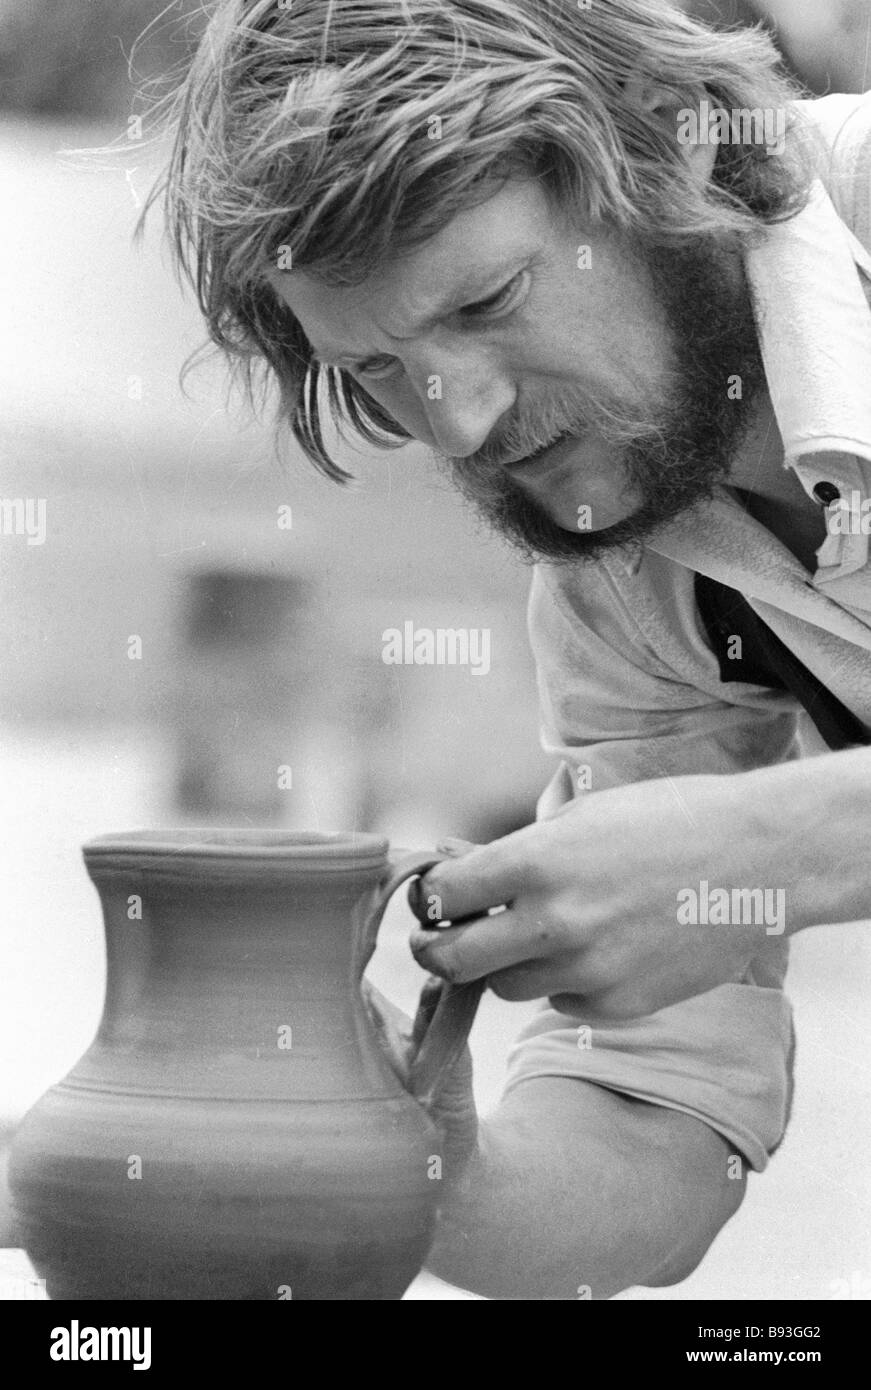 Edgar Ta participant in potters contest makes pitcher during All Handicrafts festival - Stock Image